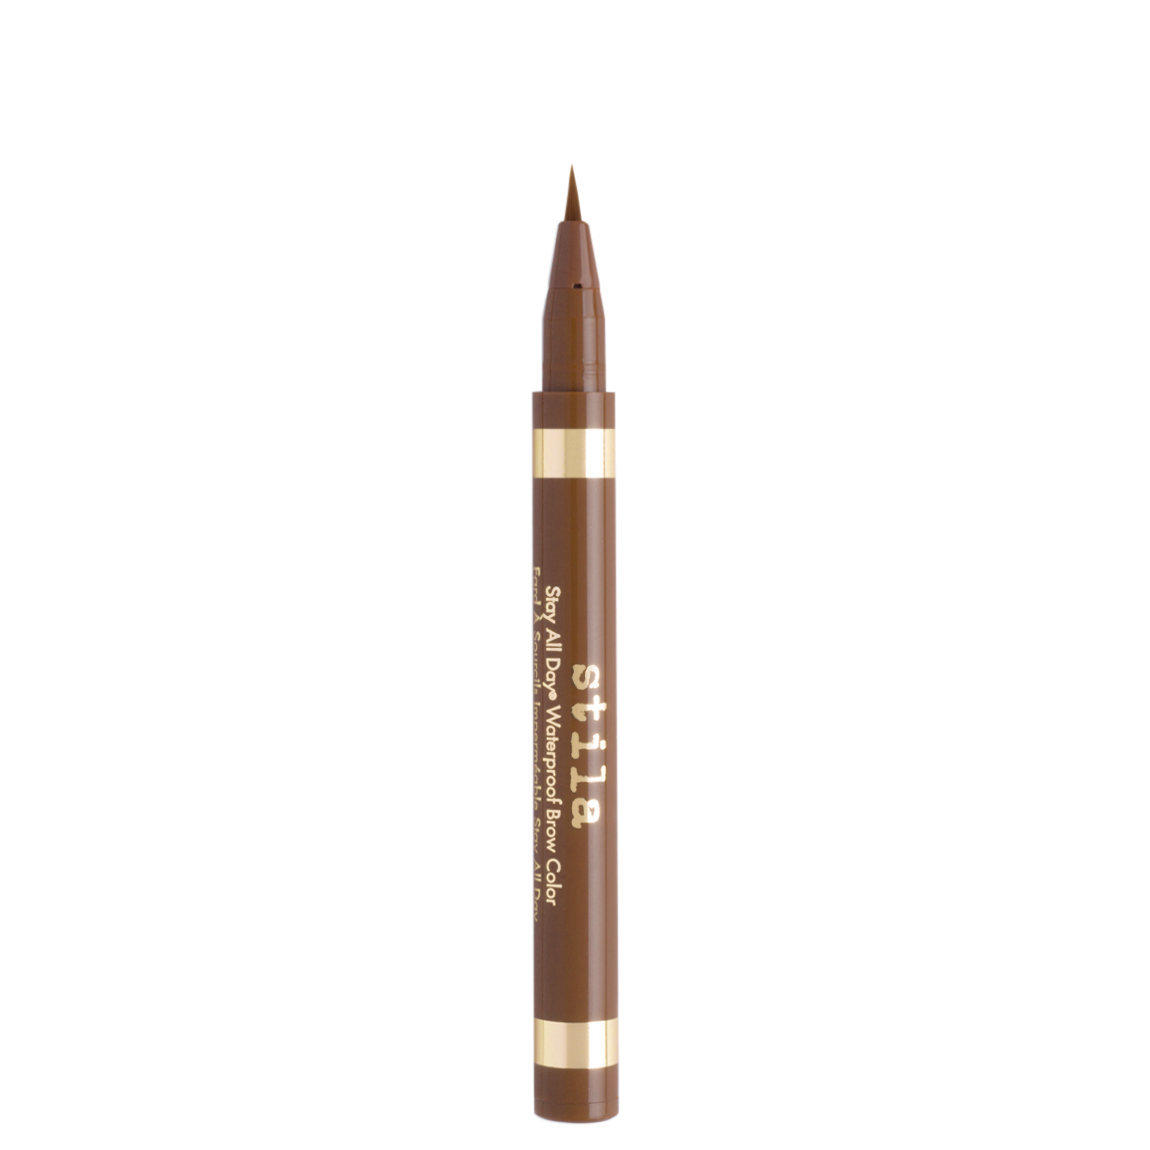 Stila Stay All Day Waterproof Brow Color Medium Warm